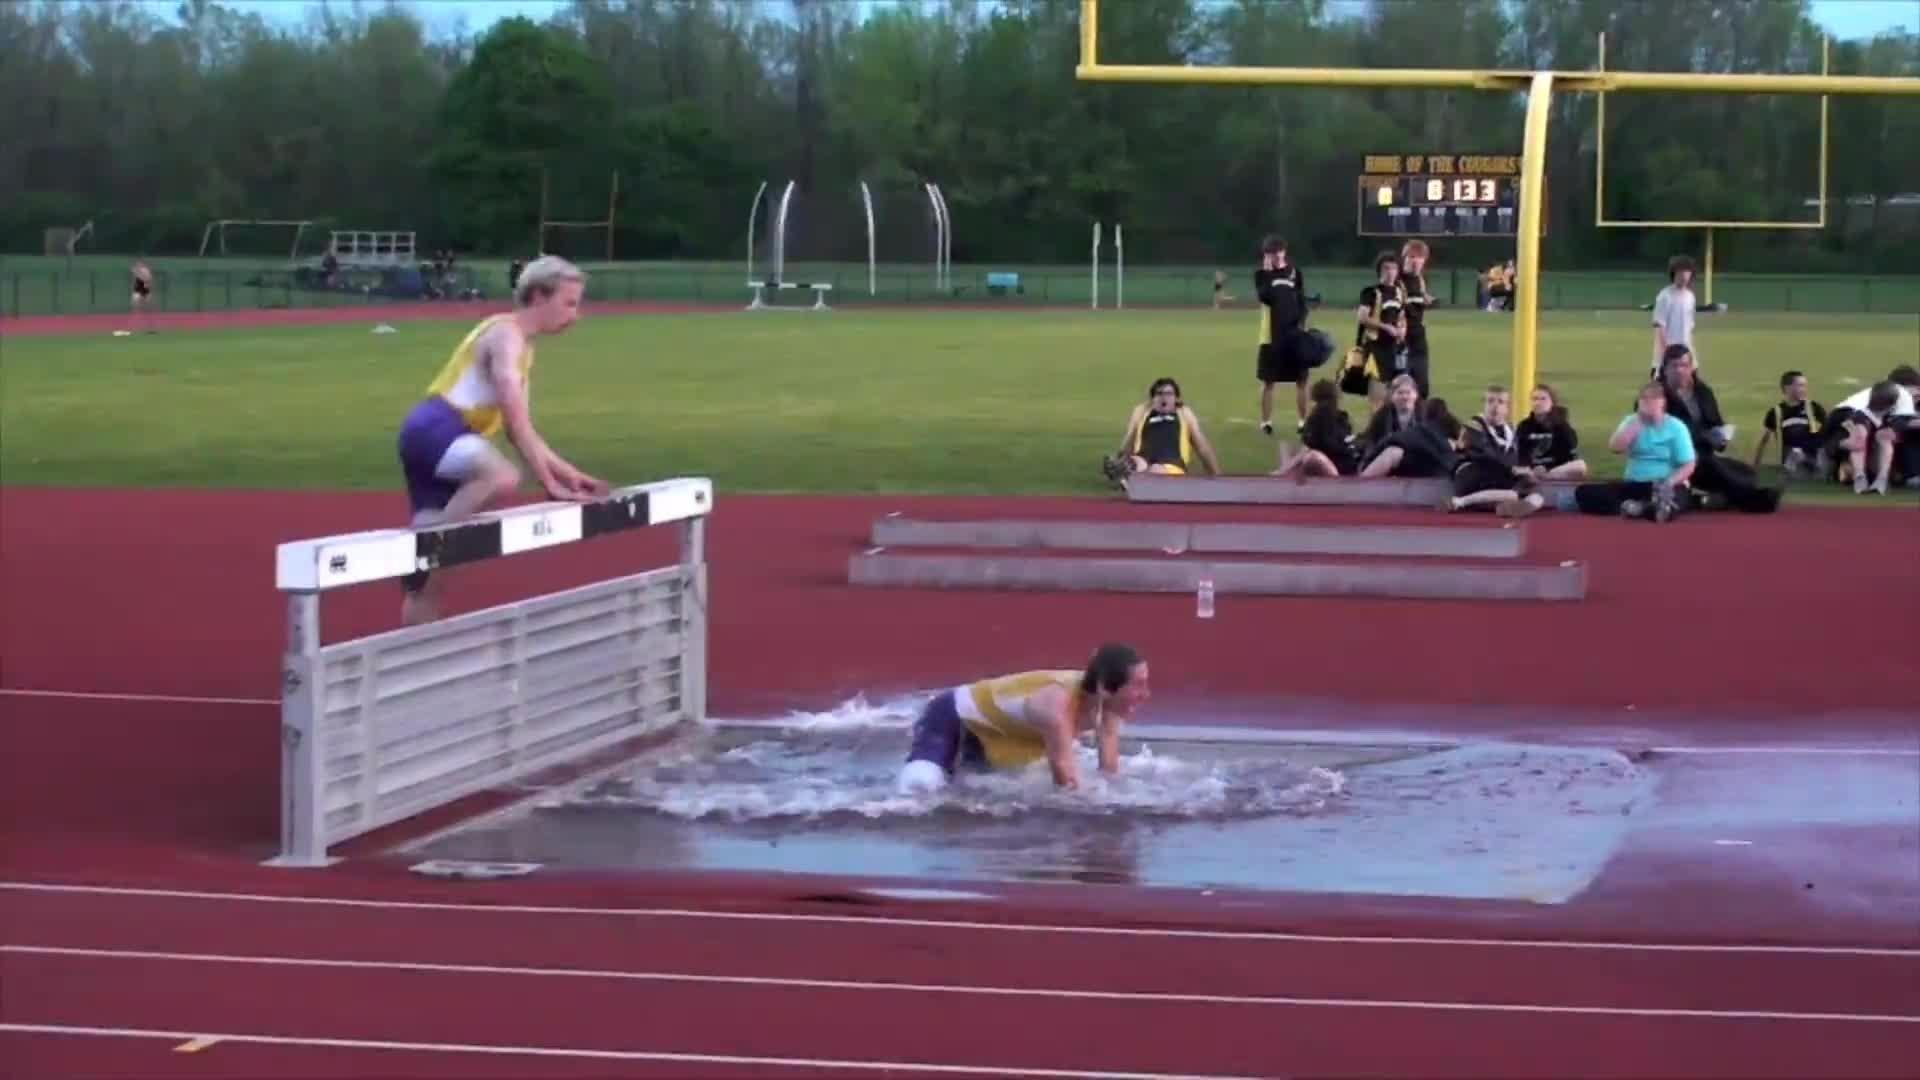 Steeplechase racer falls into water jukin media for Steeple chase